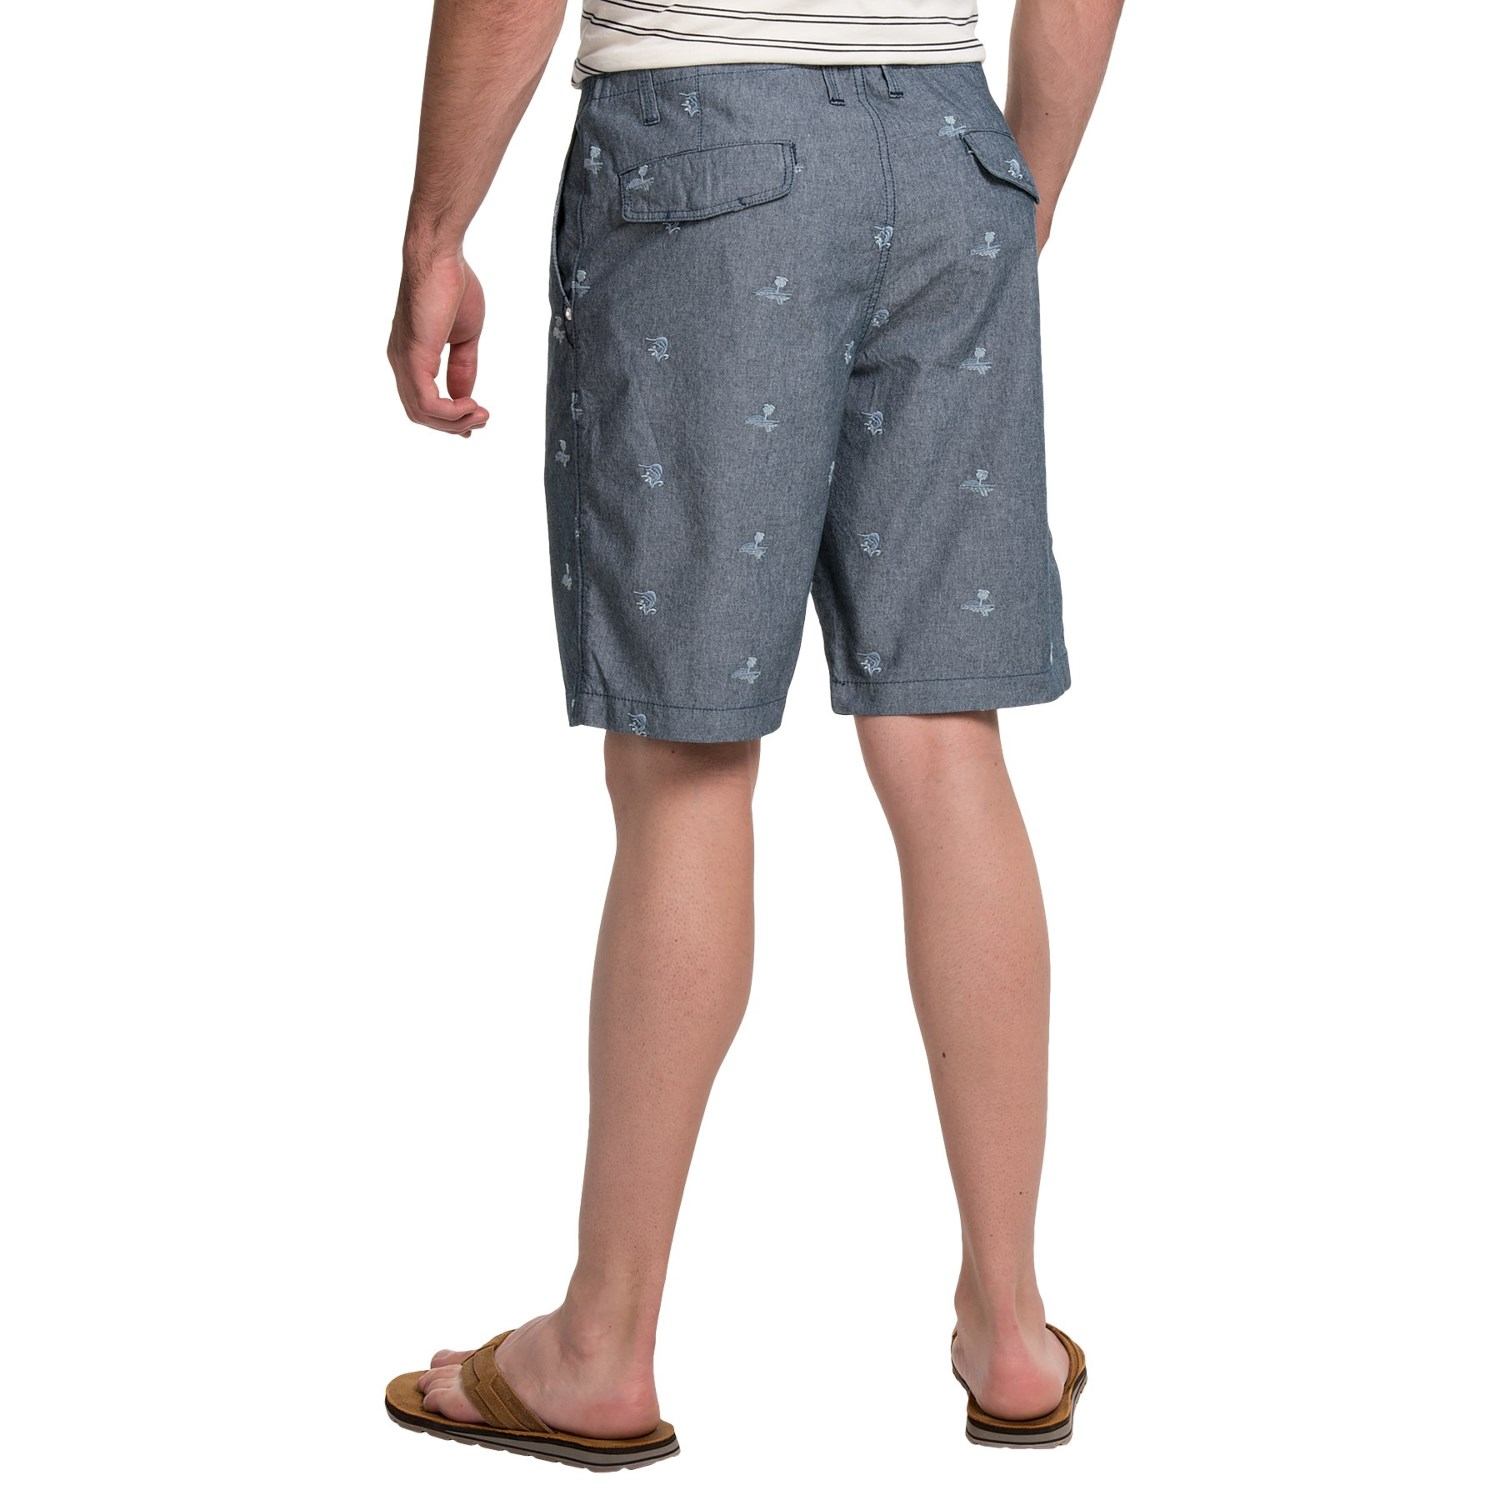 Tommy Bahama Forte Dei Marlin Shorts (For Men) - Save 48%